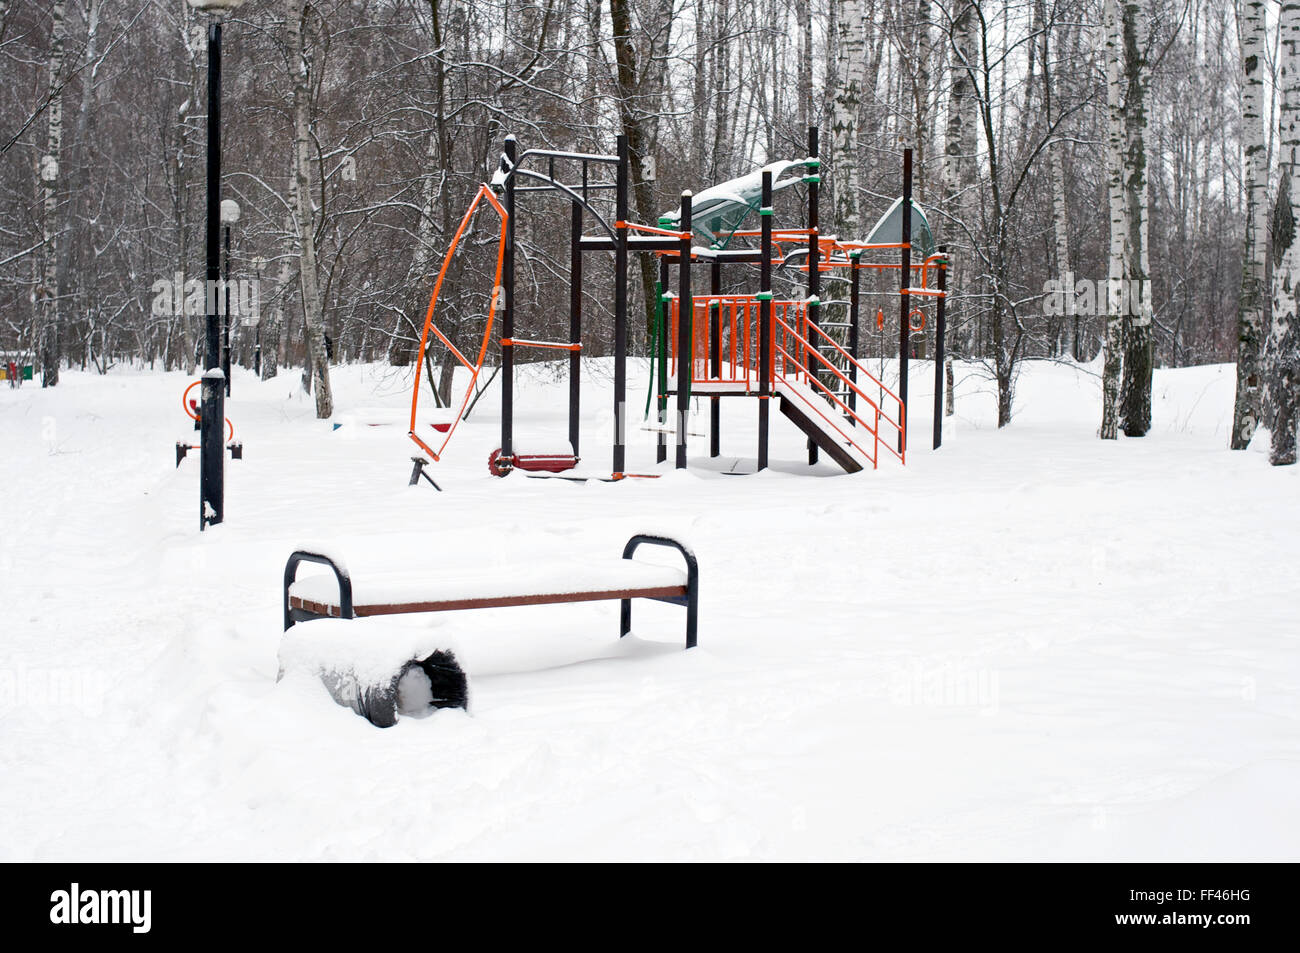 Bench and exercise equipment with a lot of snow - Stock Image